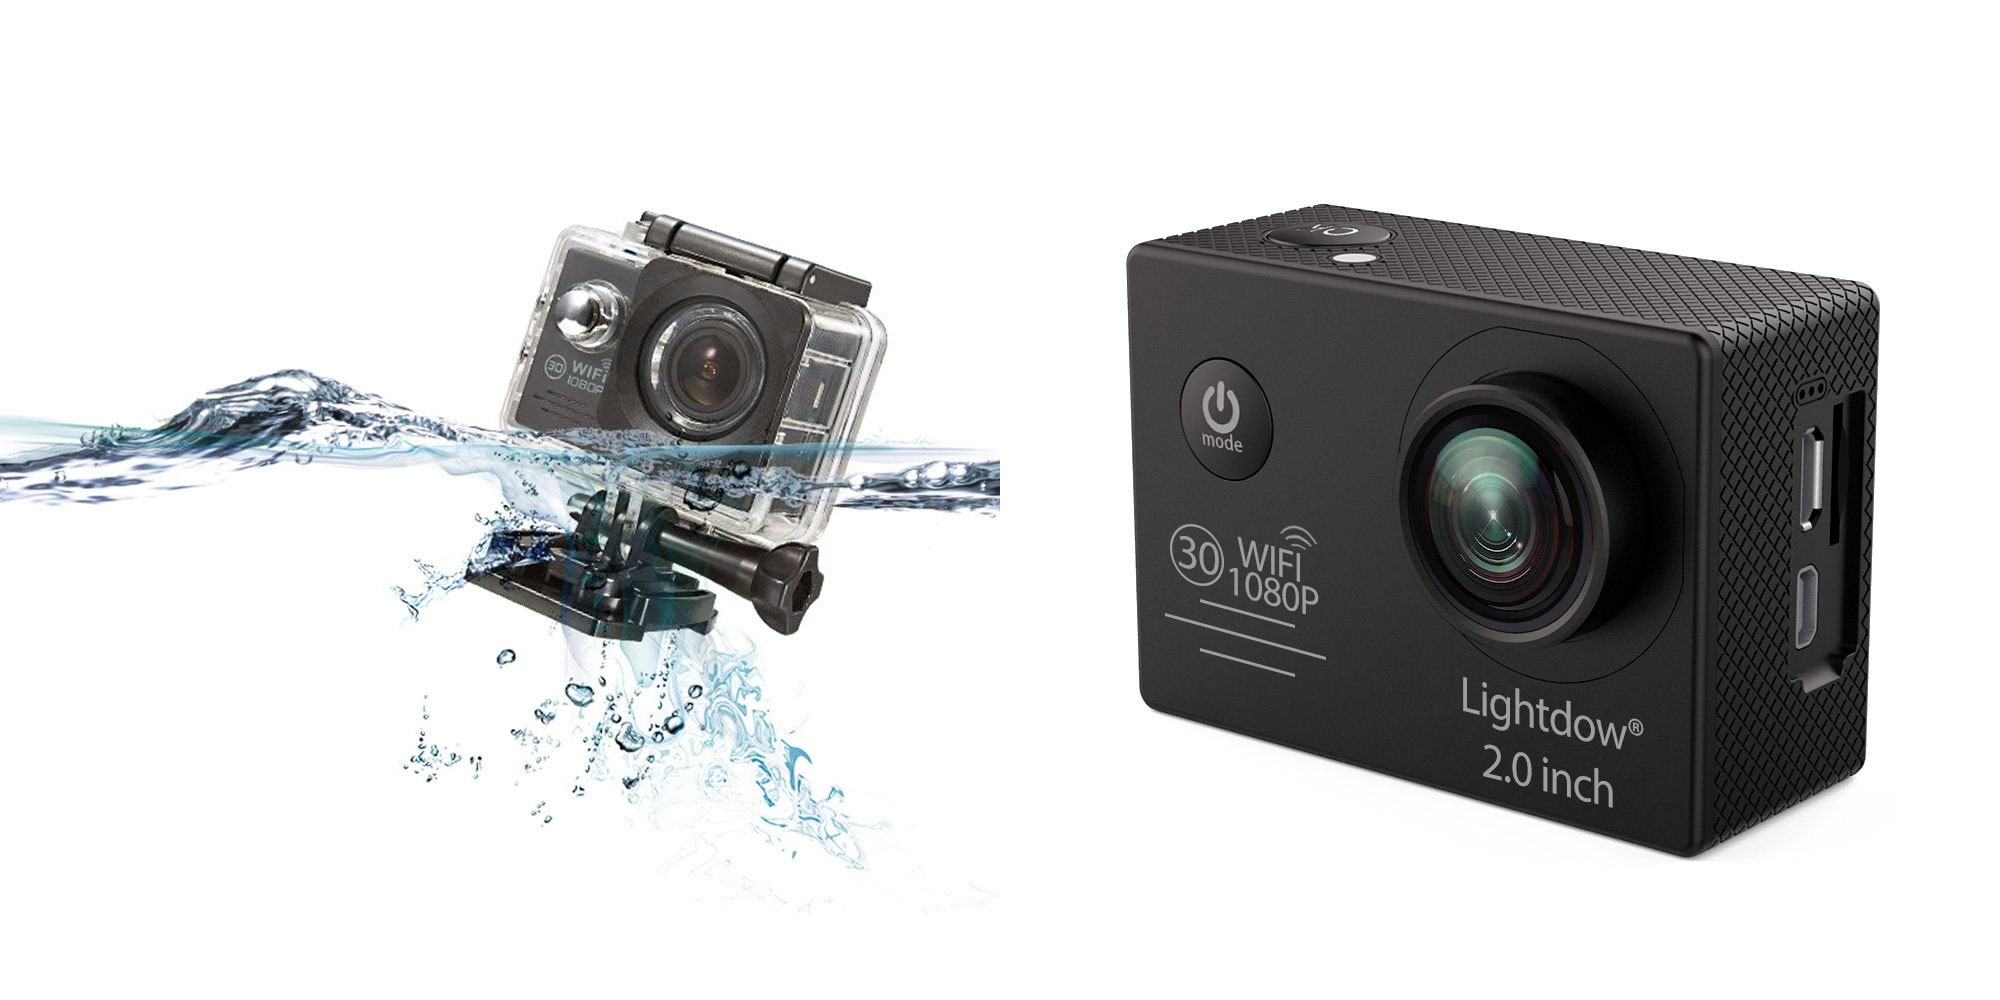 This budget-friendly $24 action camera packs 1080p recording, 30m waterproofing, & more